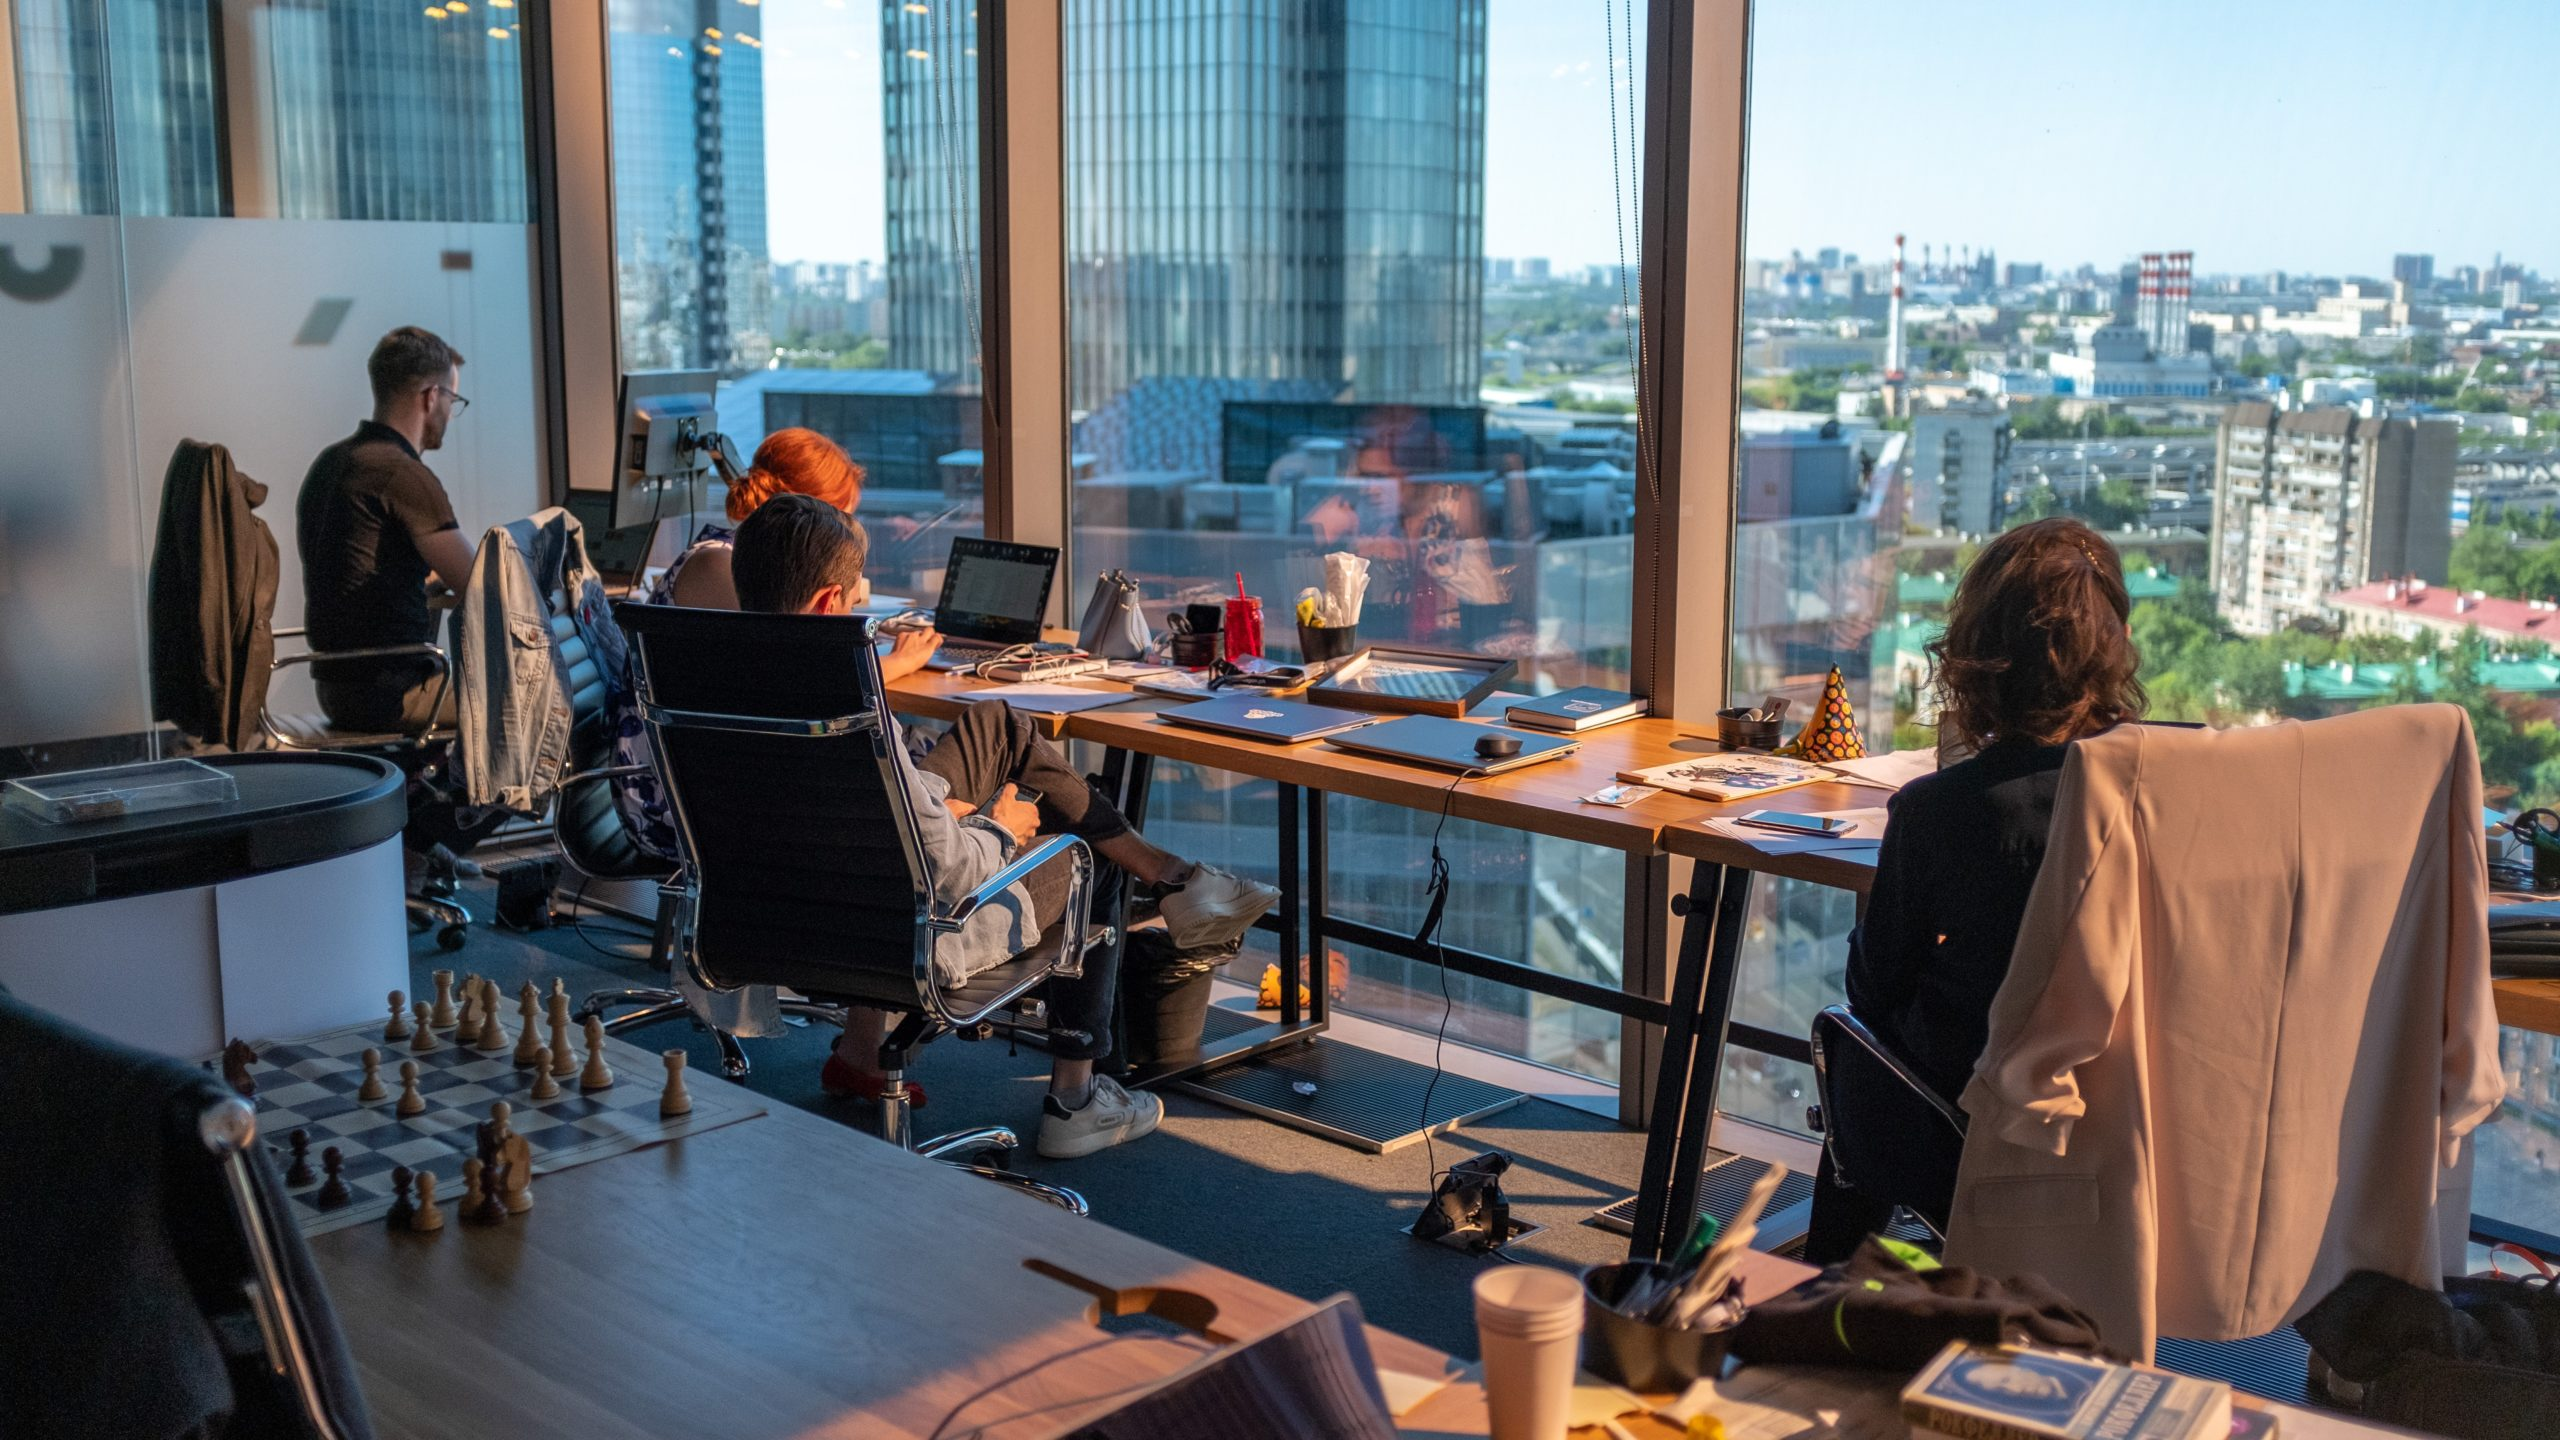 Geyer's Global Director shares his plans for a 'flexible' workspace in the post-pandemic future